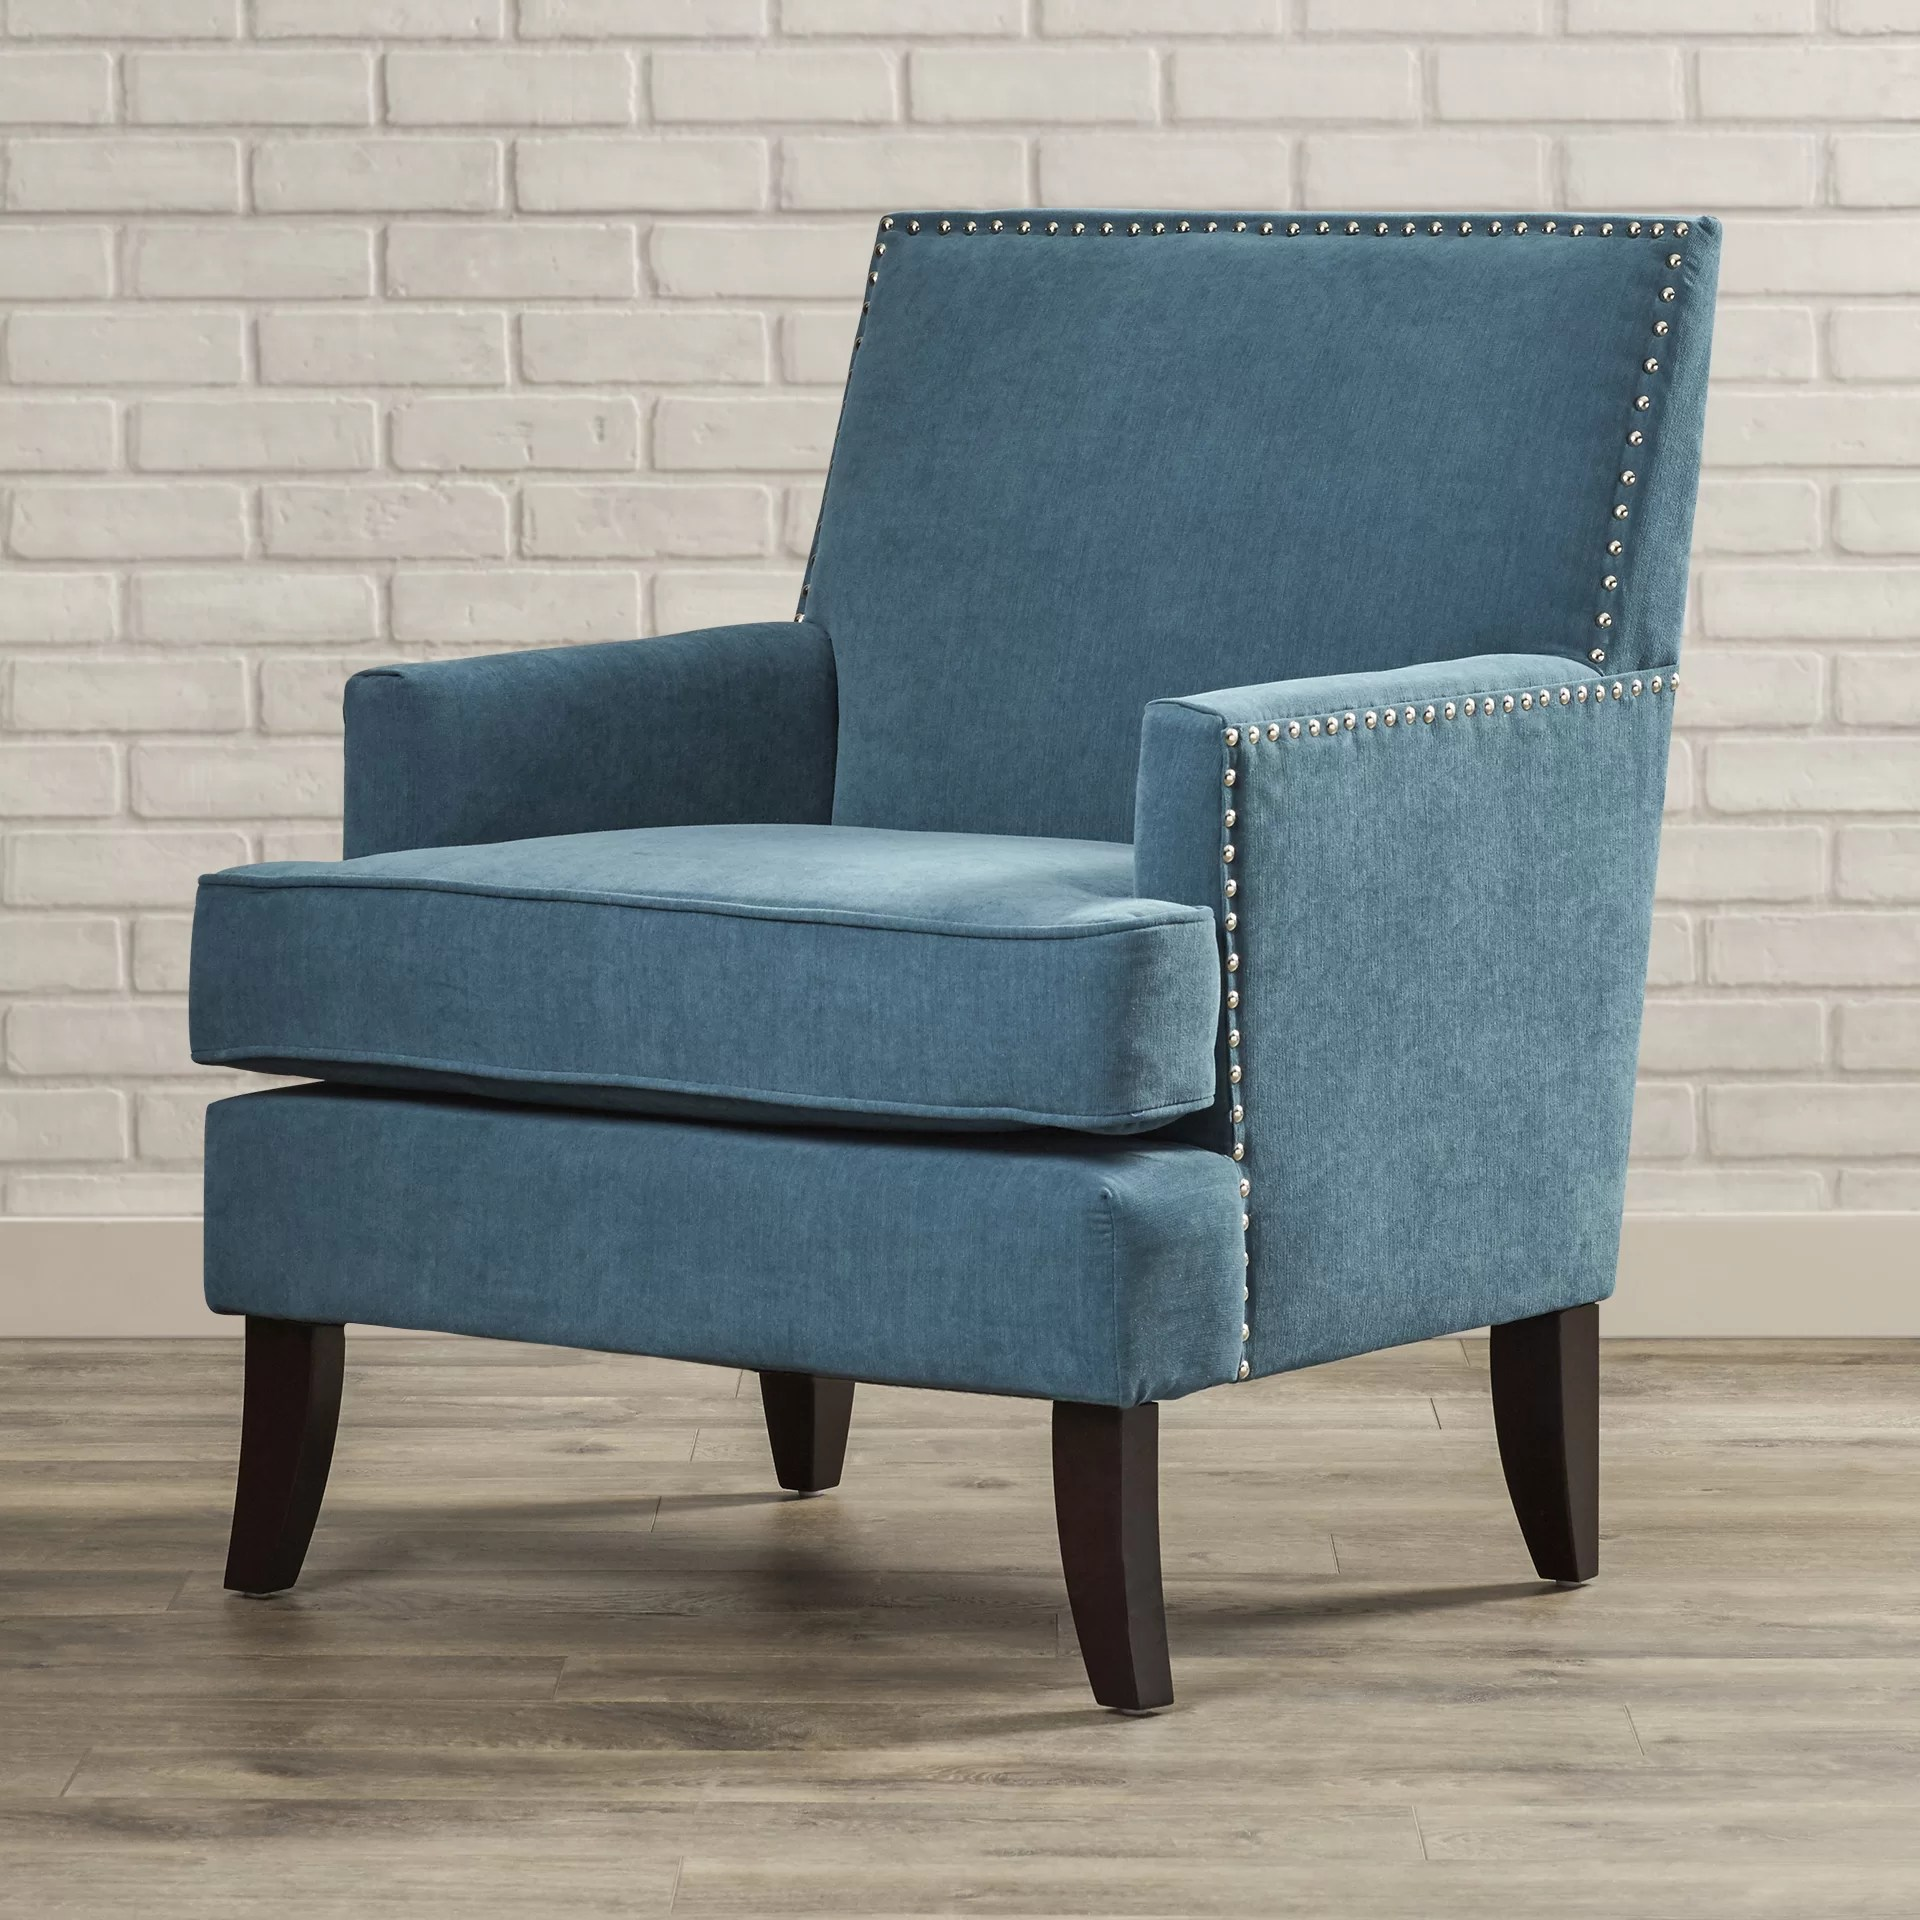 Studio Chairs Brayden Studio Aldwick Arm Chair And Reviews Wayfair